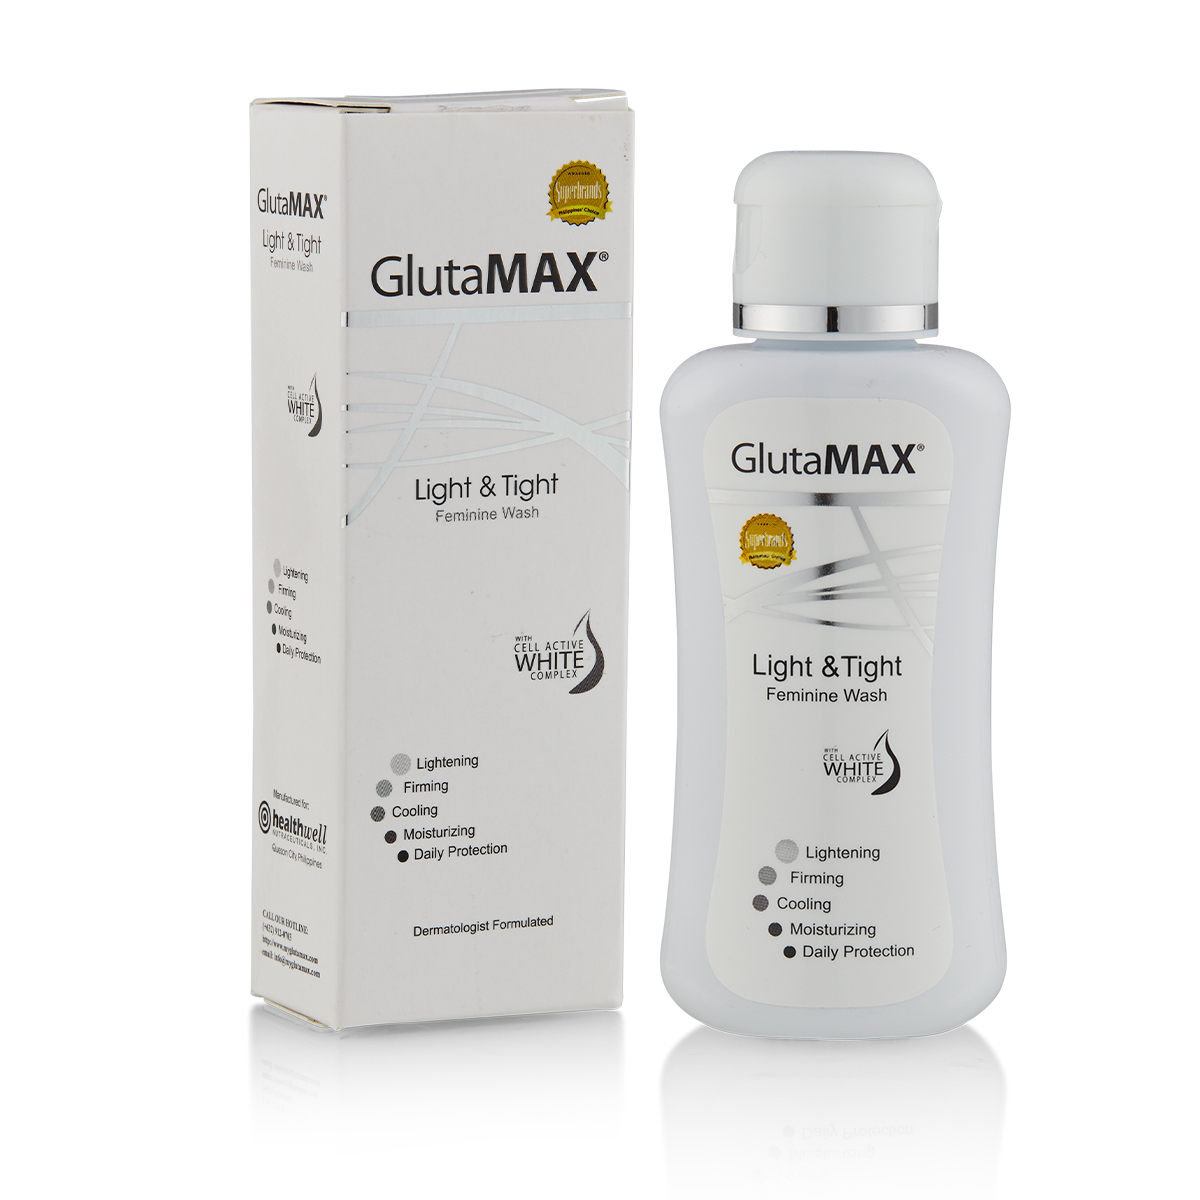 GlutaMAX Light and Tight Feminine Wash 50ml - With Cell Active White Complex